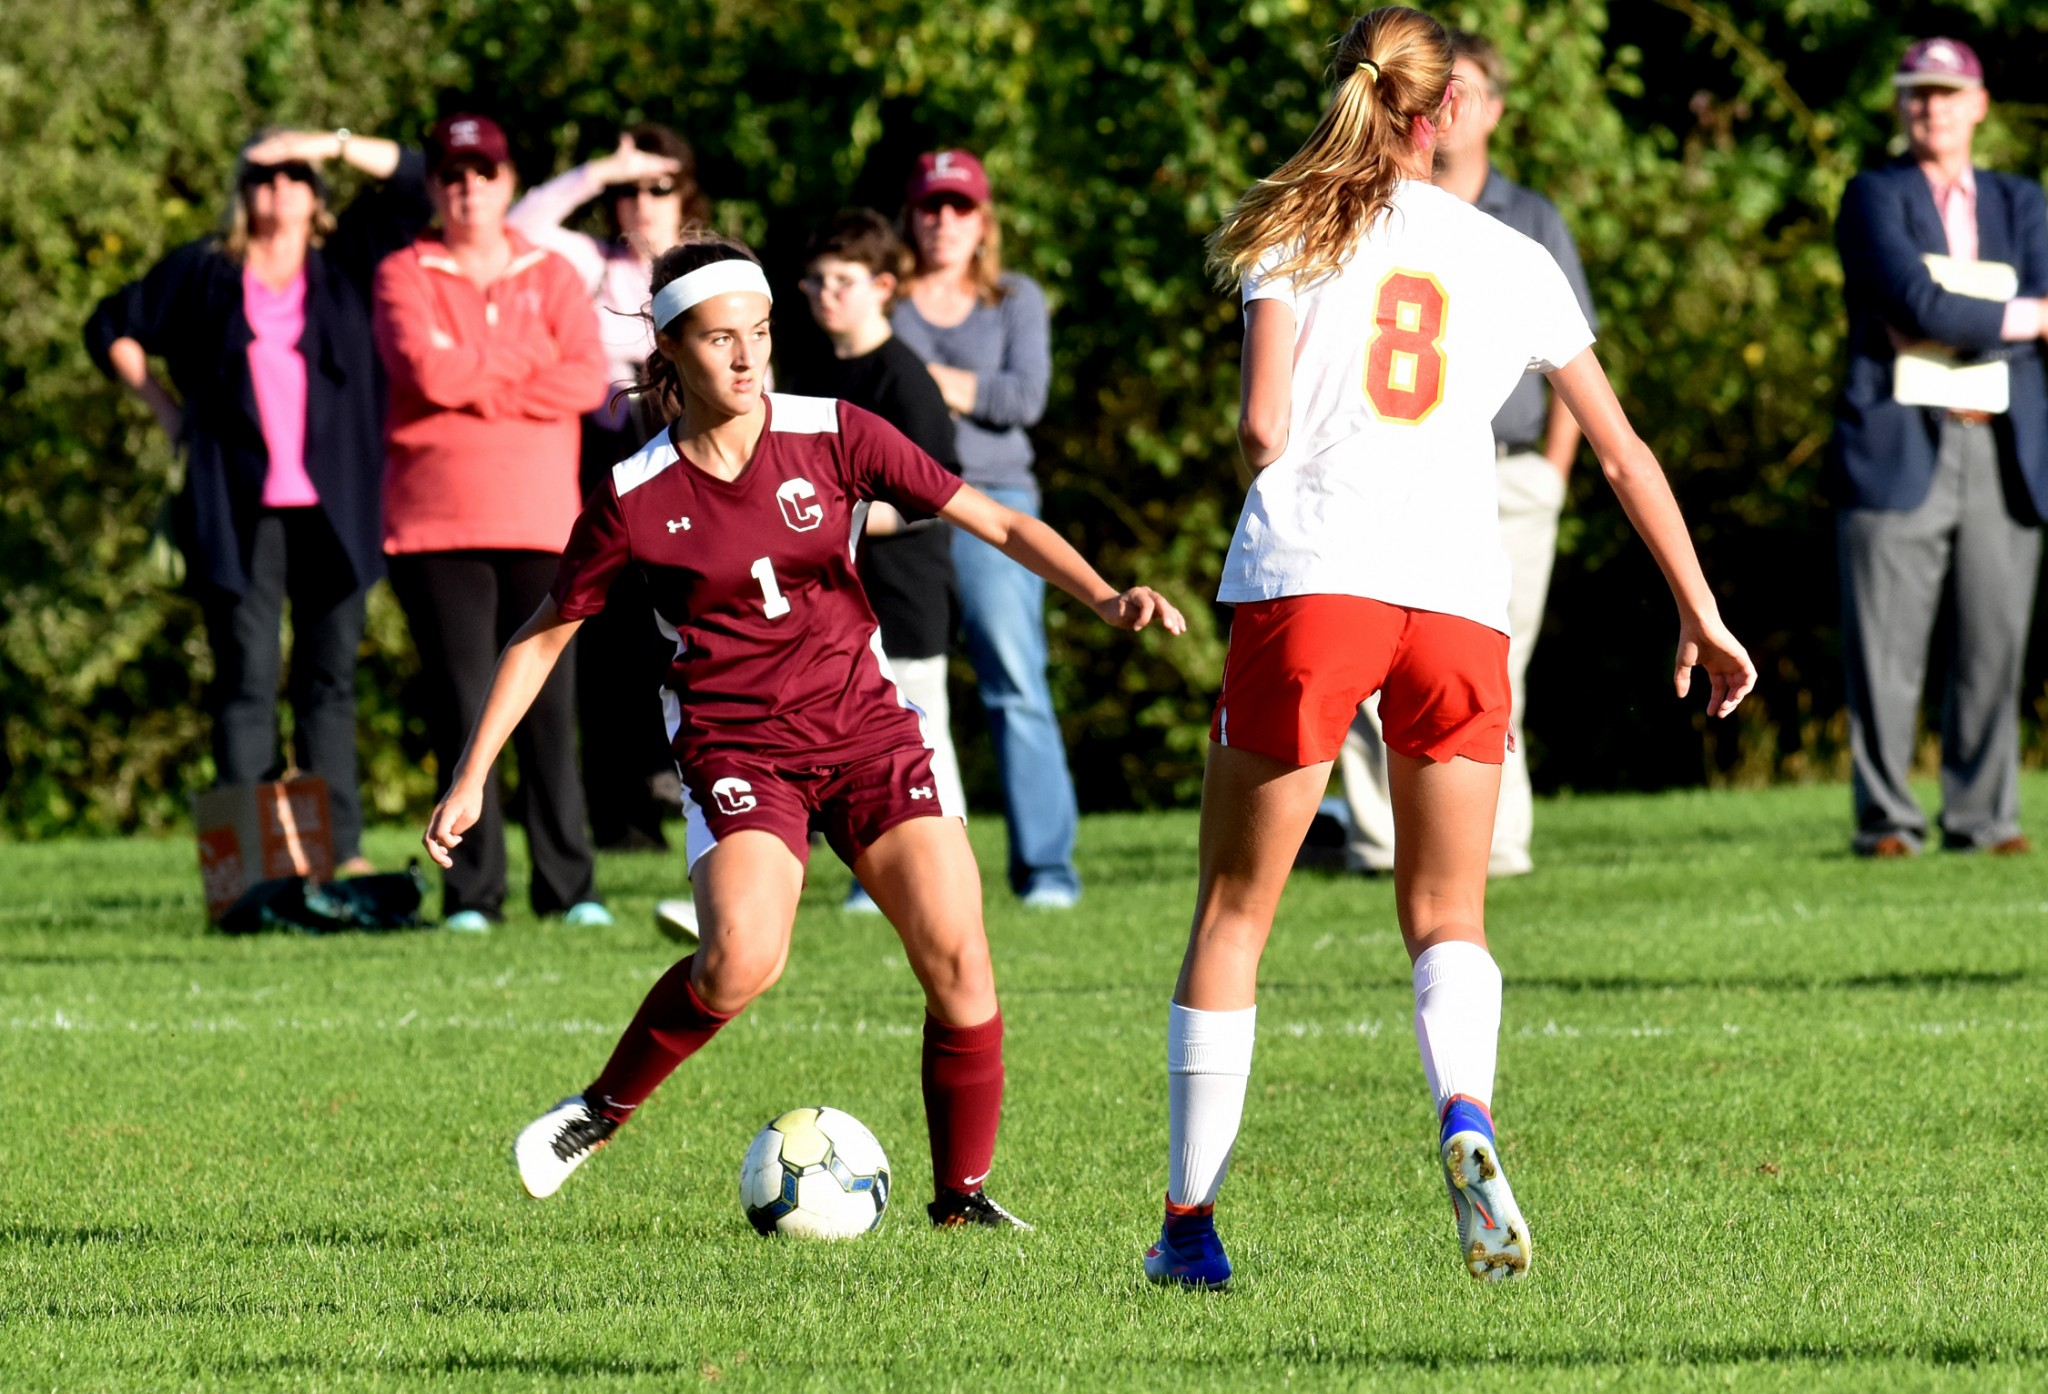 Conestoga's Caitlin Donovan, left, passes under pressure from Penncrest's Corryn Gamber during the teams' 2-2 draw Tuesday. (Digital First Media/Anne Neborak)